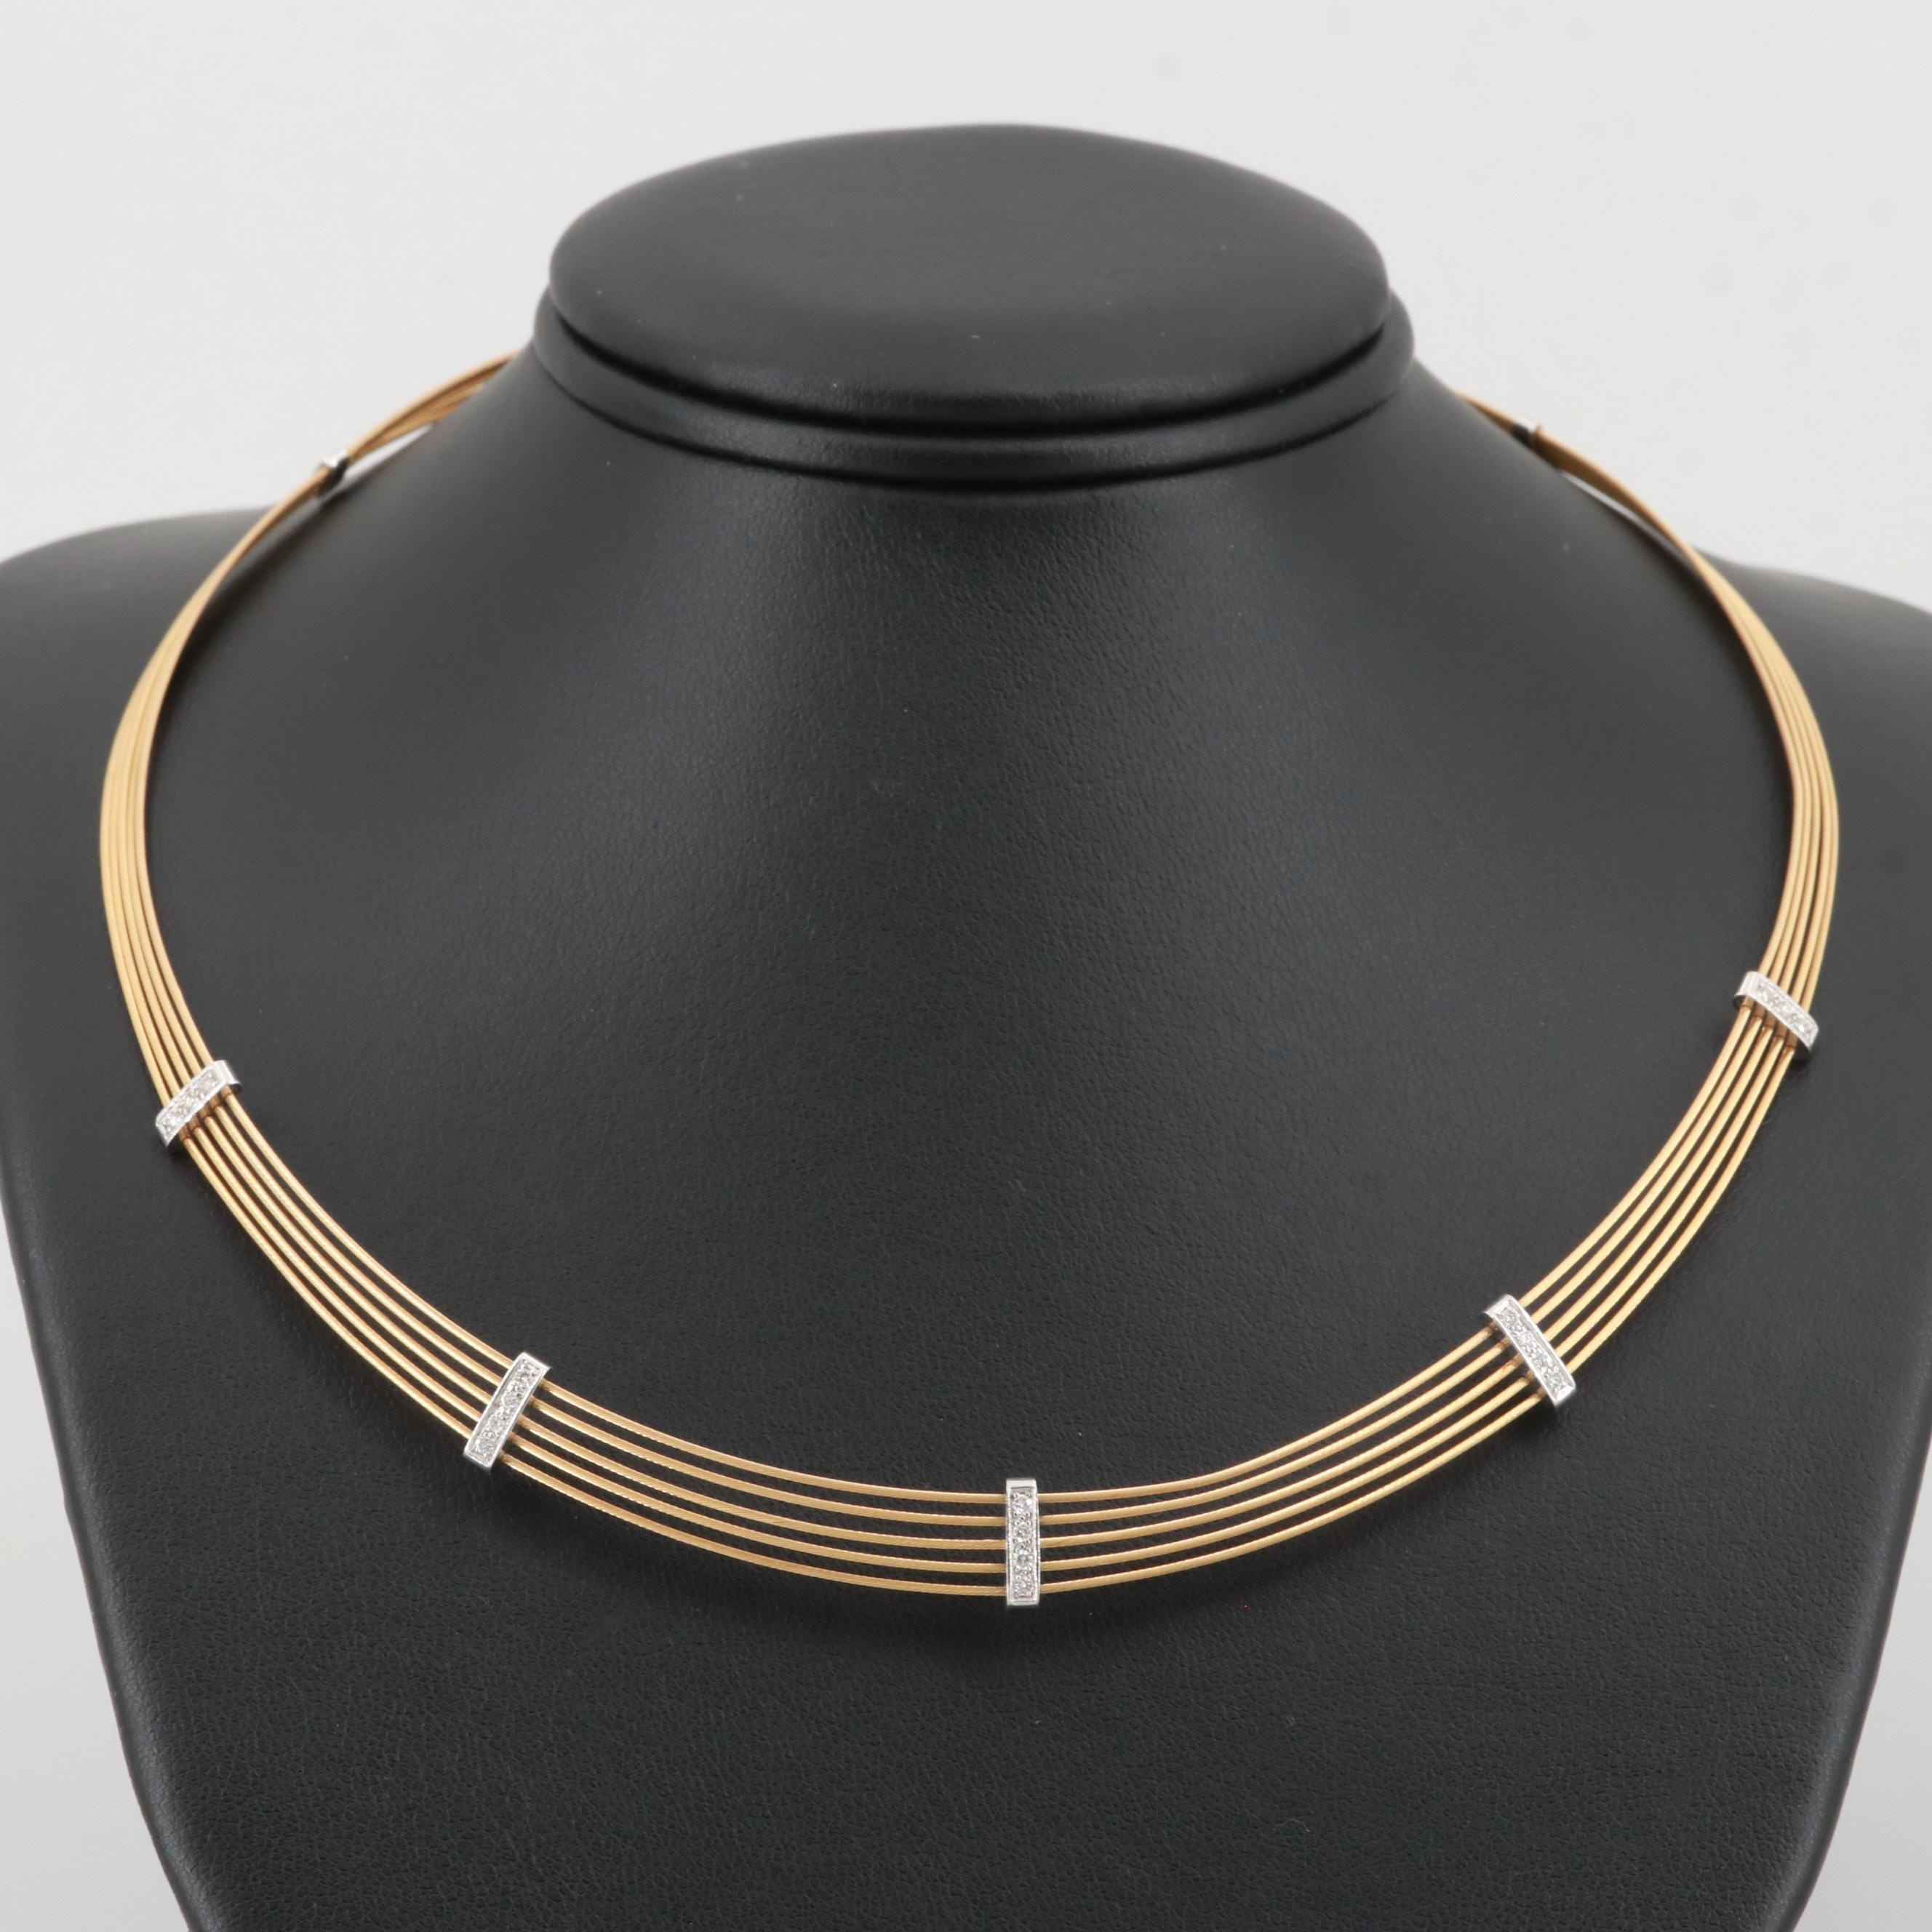 18K Yellow Gold Diamond Coil Necklace with White Gold Accents